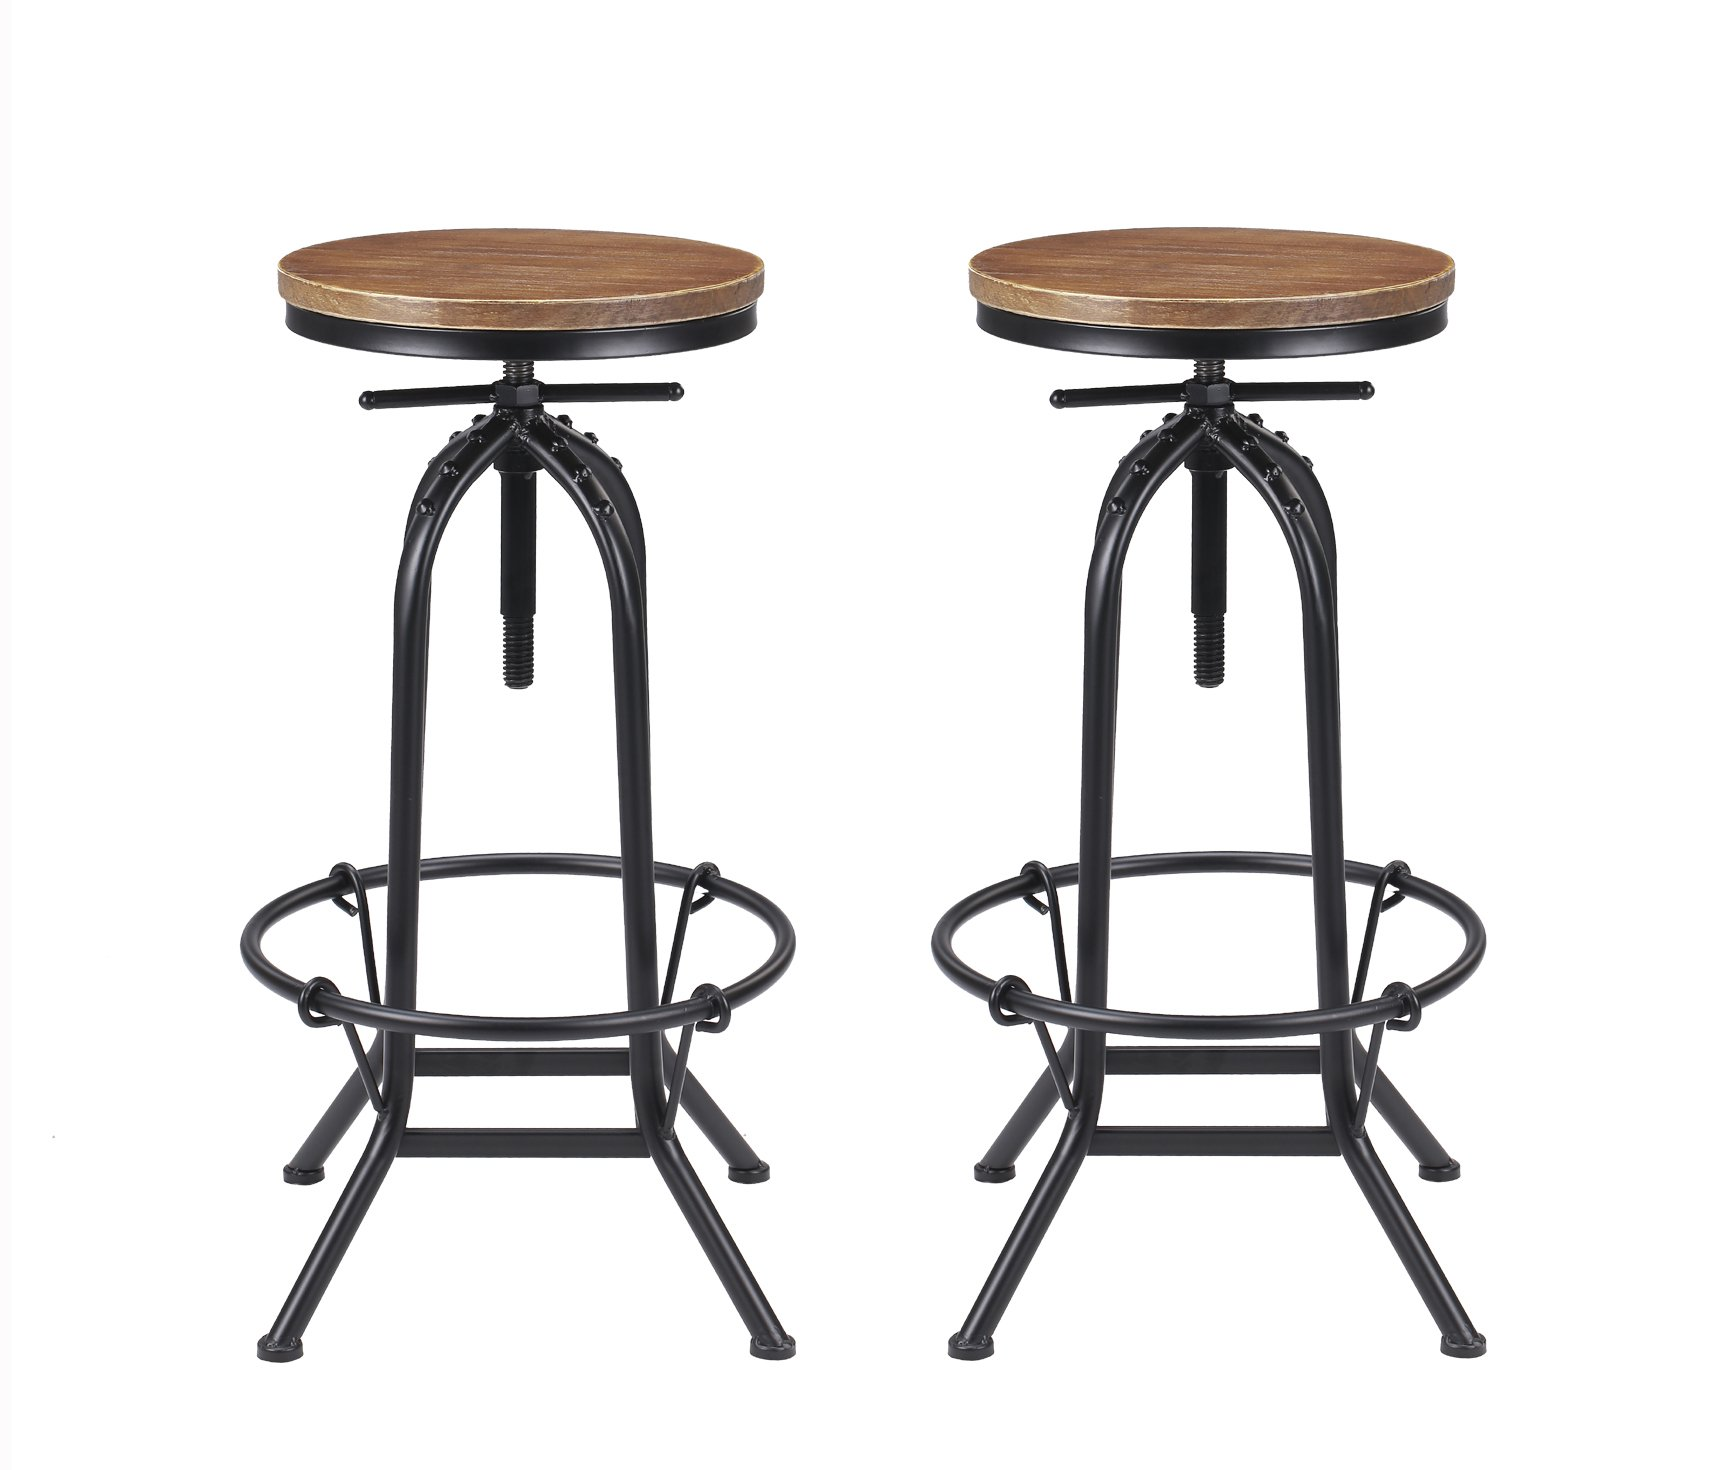 VILAVITA Set of 2 Bar Stools 27.5'' to 31.5'' Adjustable Height Pine Wood Swivel Bar Stool, Retro Finish Wooden Seat and Wrought Iron Frame Kitchen Bar Chairs